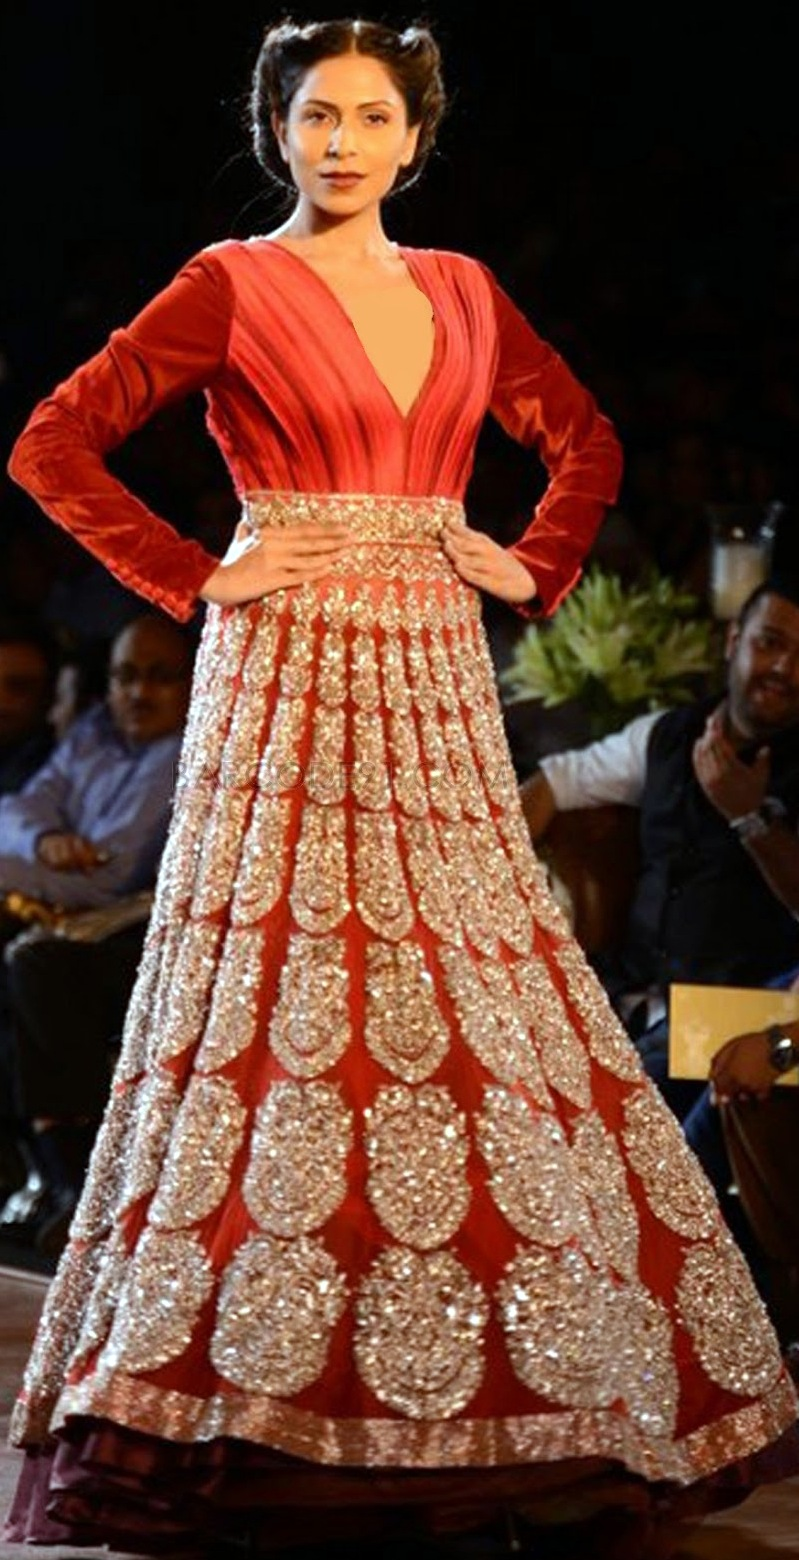 manish-malhotra-at-delhi-couture-week-